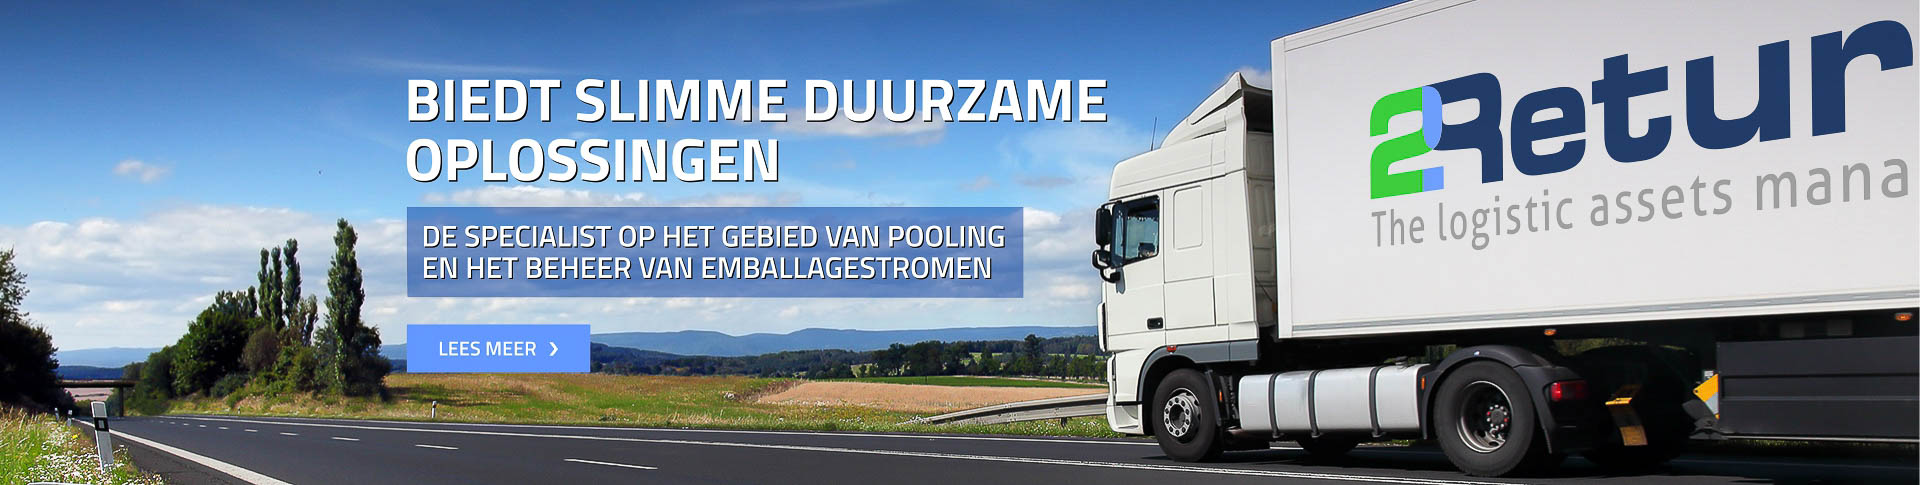 Pooling of logistic products